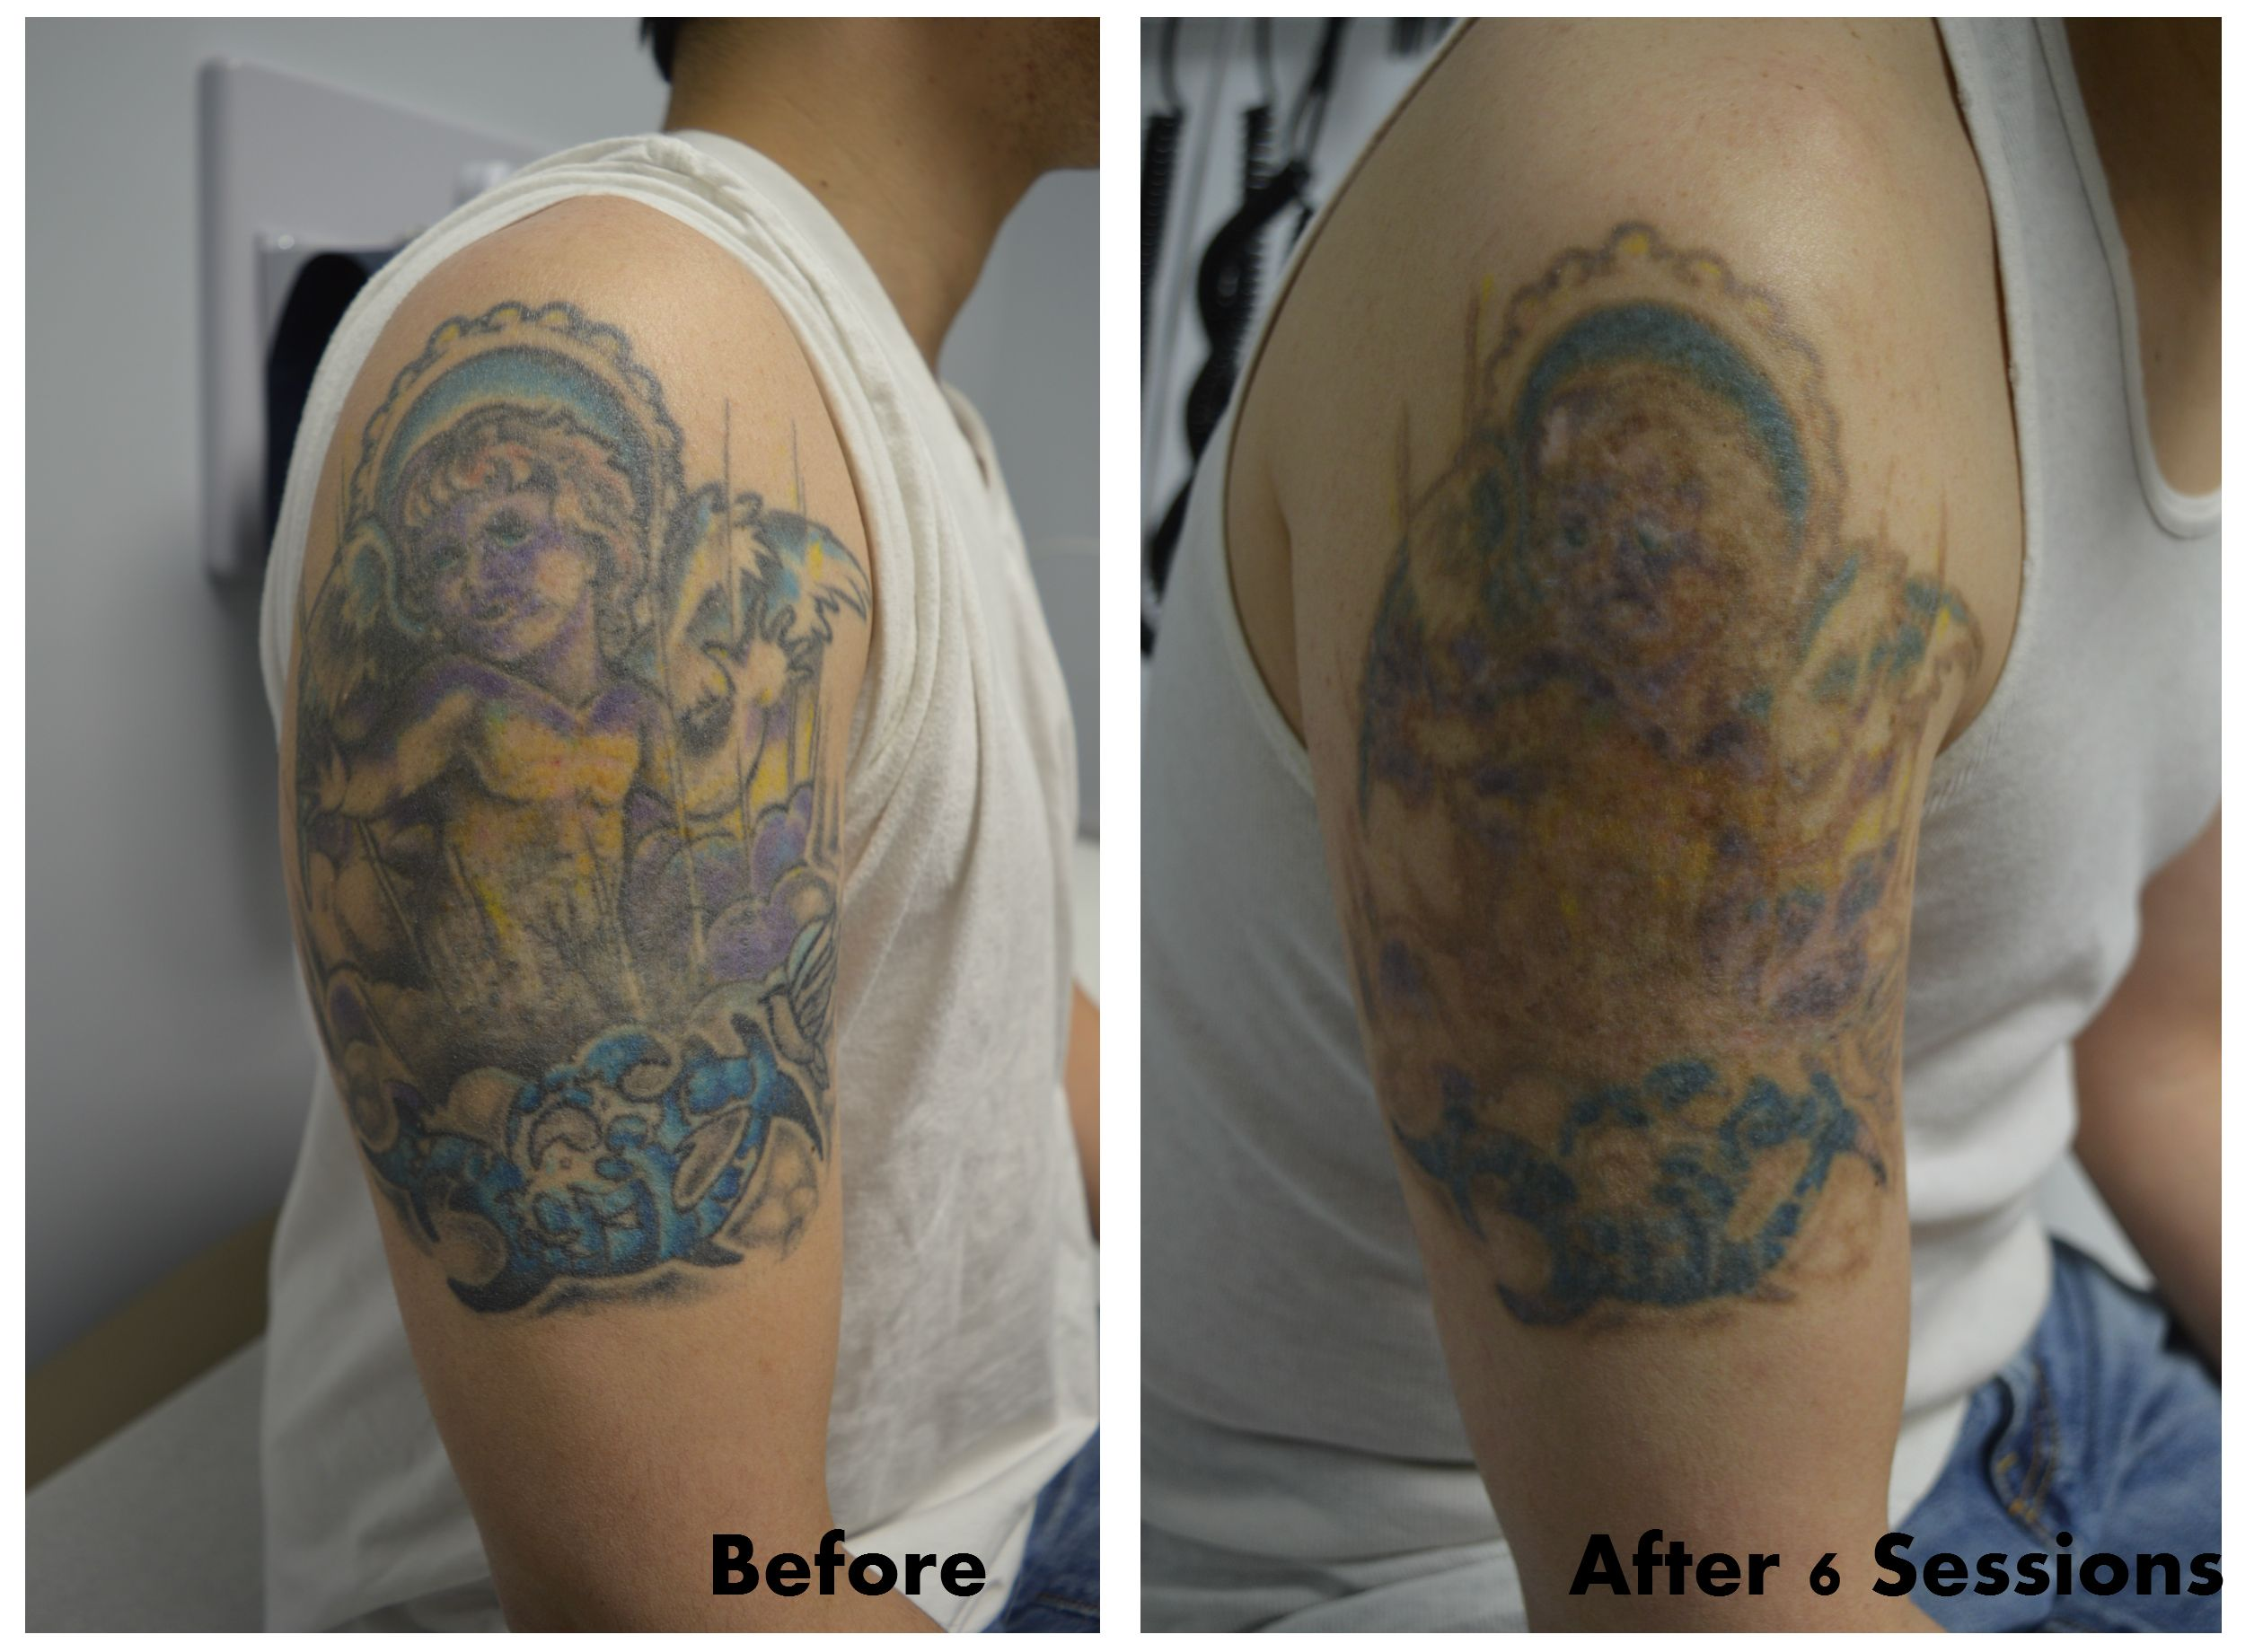 Full color tattoo removal after 6 sessions! Look at that fading ...